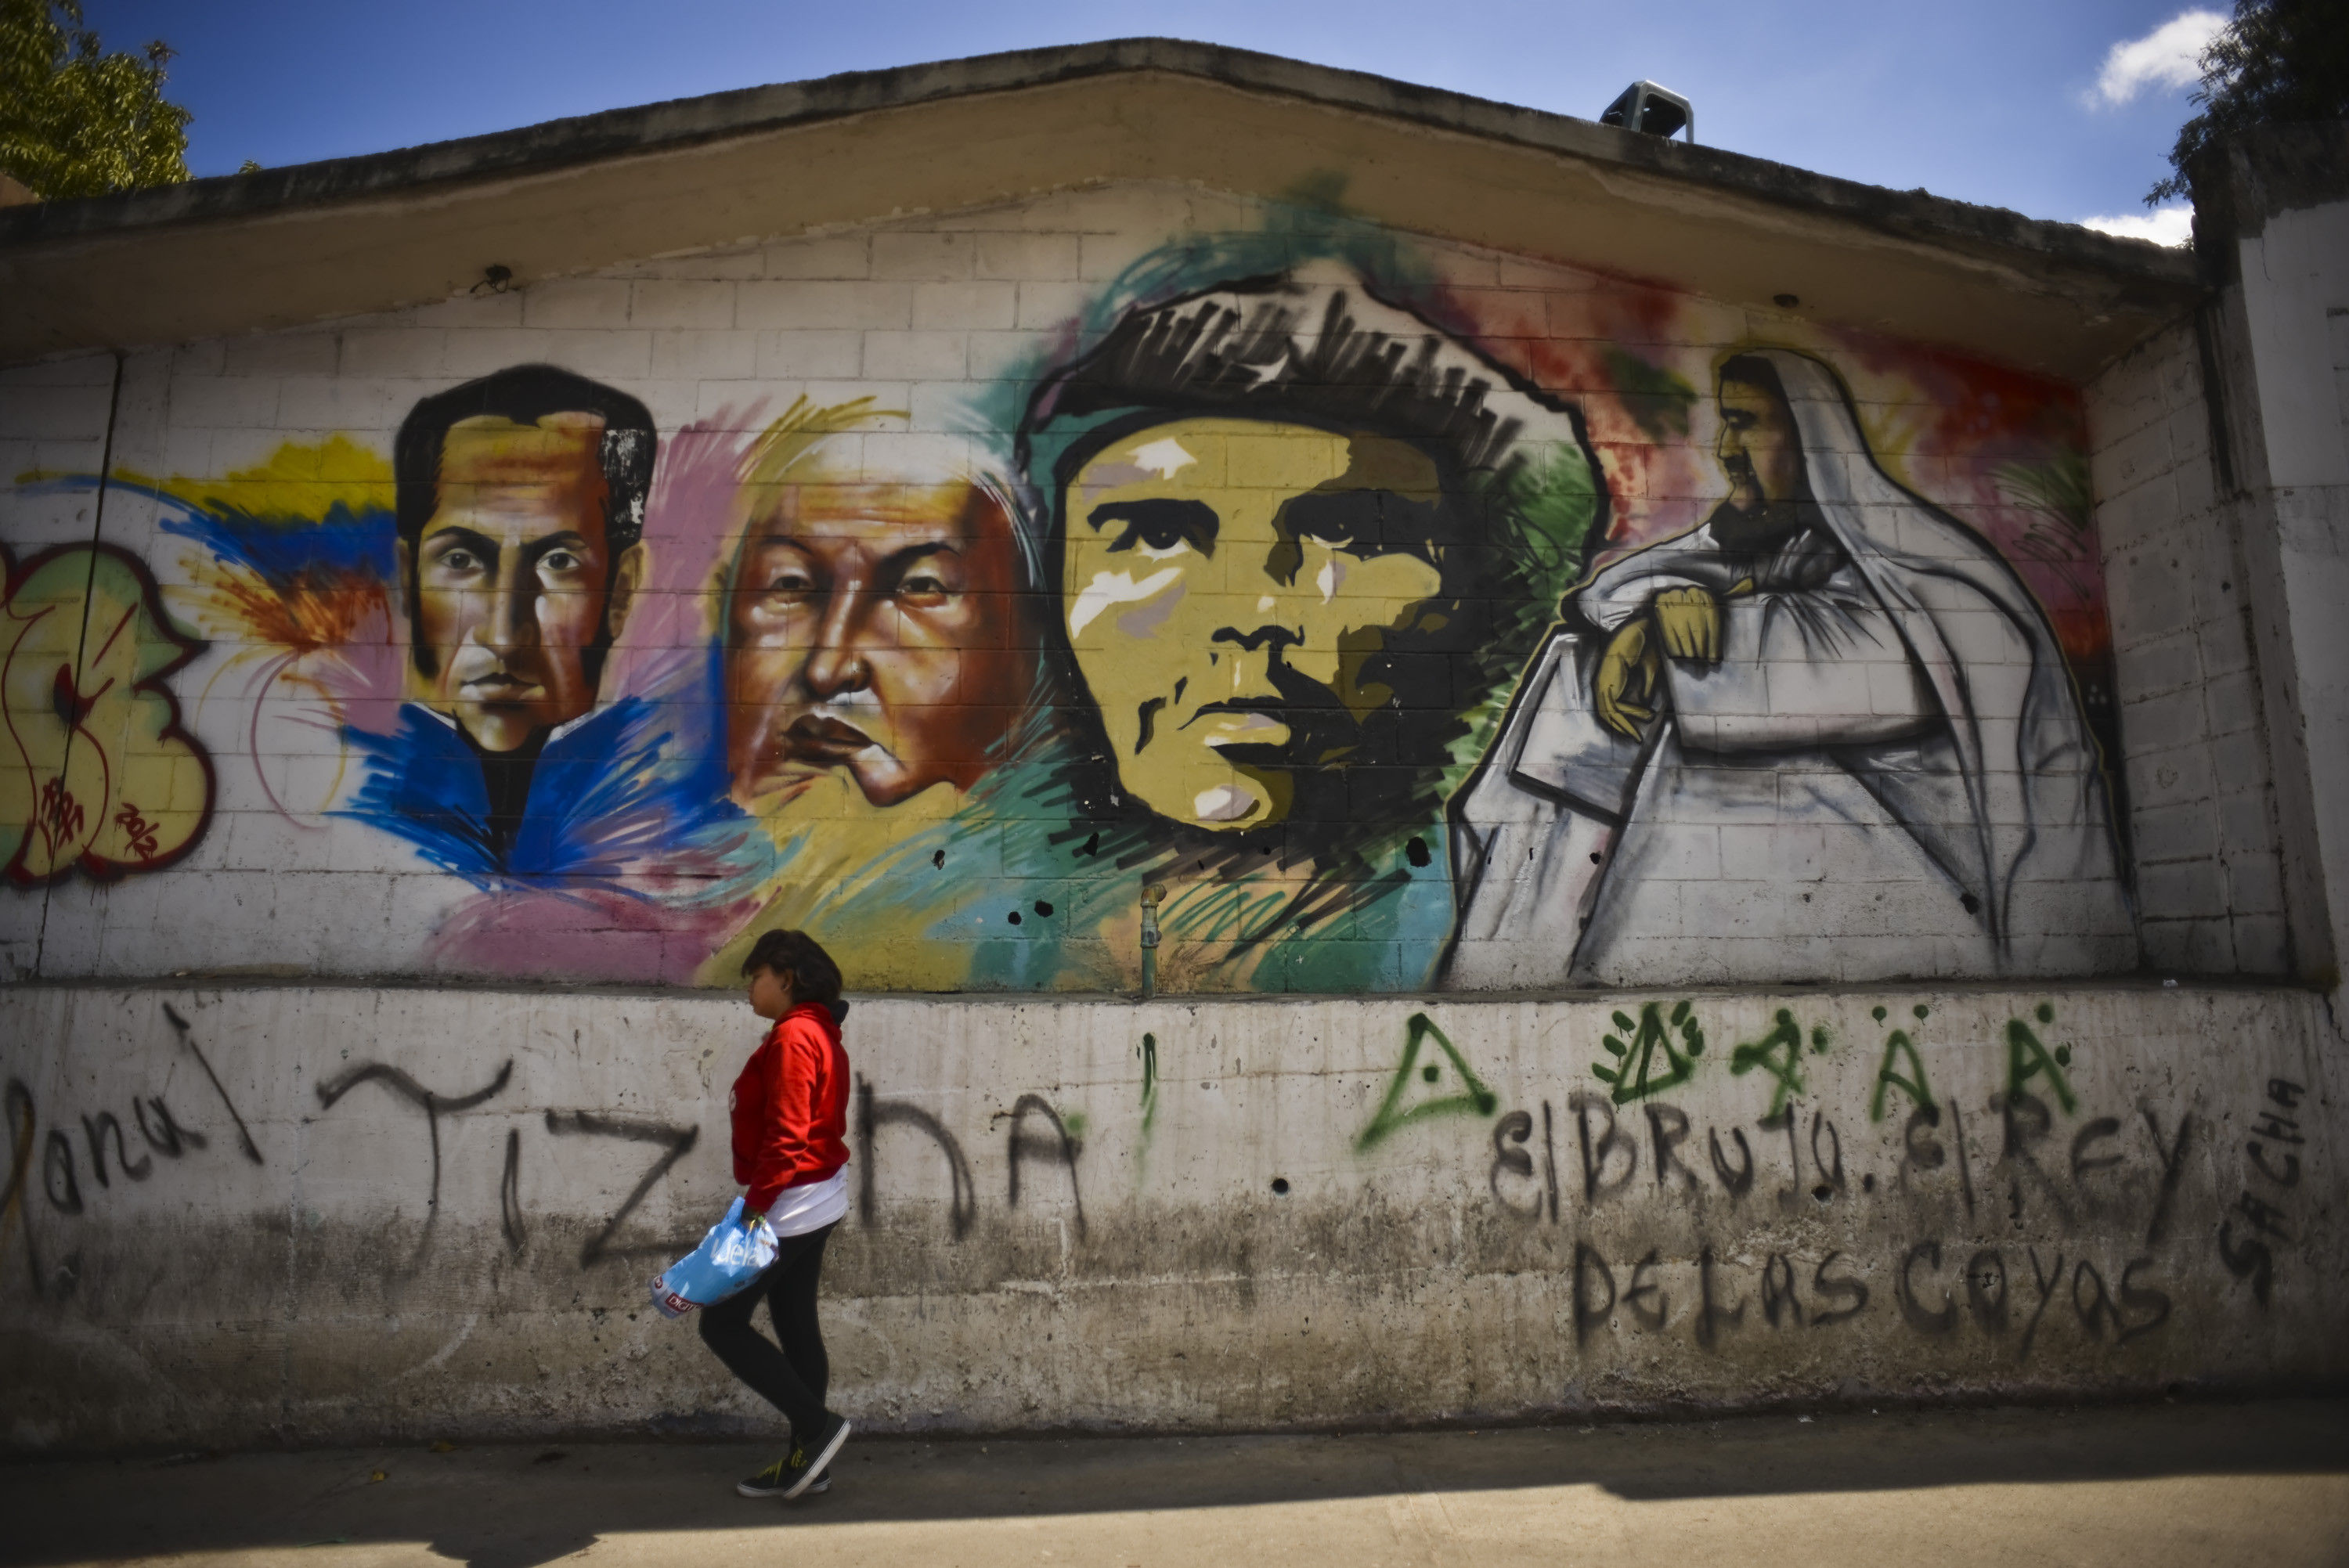 16 January 2013: A woman walks past a graffiti mural depicting (from left) Simon Bolivar, former Venezuelan President Hugo Chavez, Che Guevara and Jesus Christ in downtown Caracas, Venezuela. Photography: Meridith Kohut/Bloomberg via Getty Images